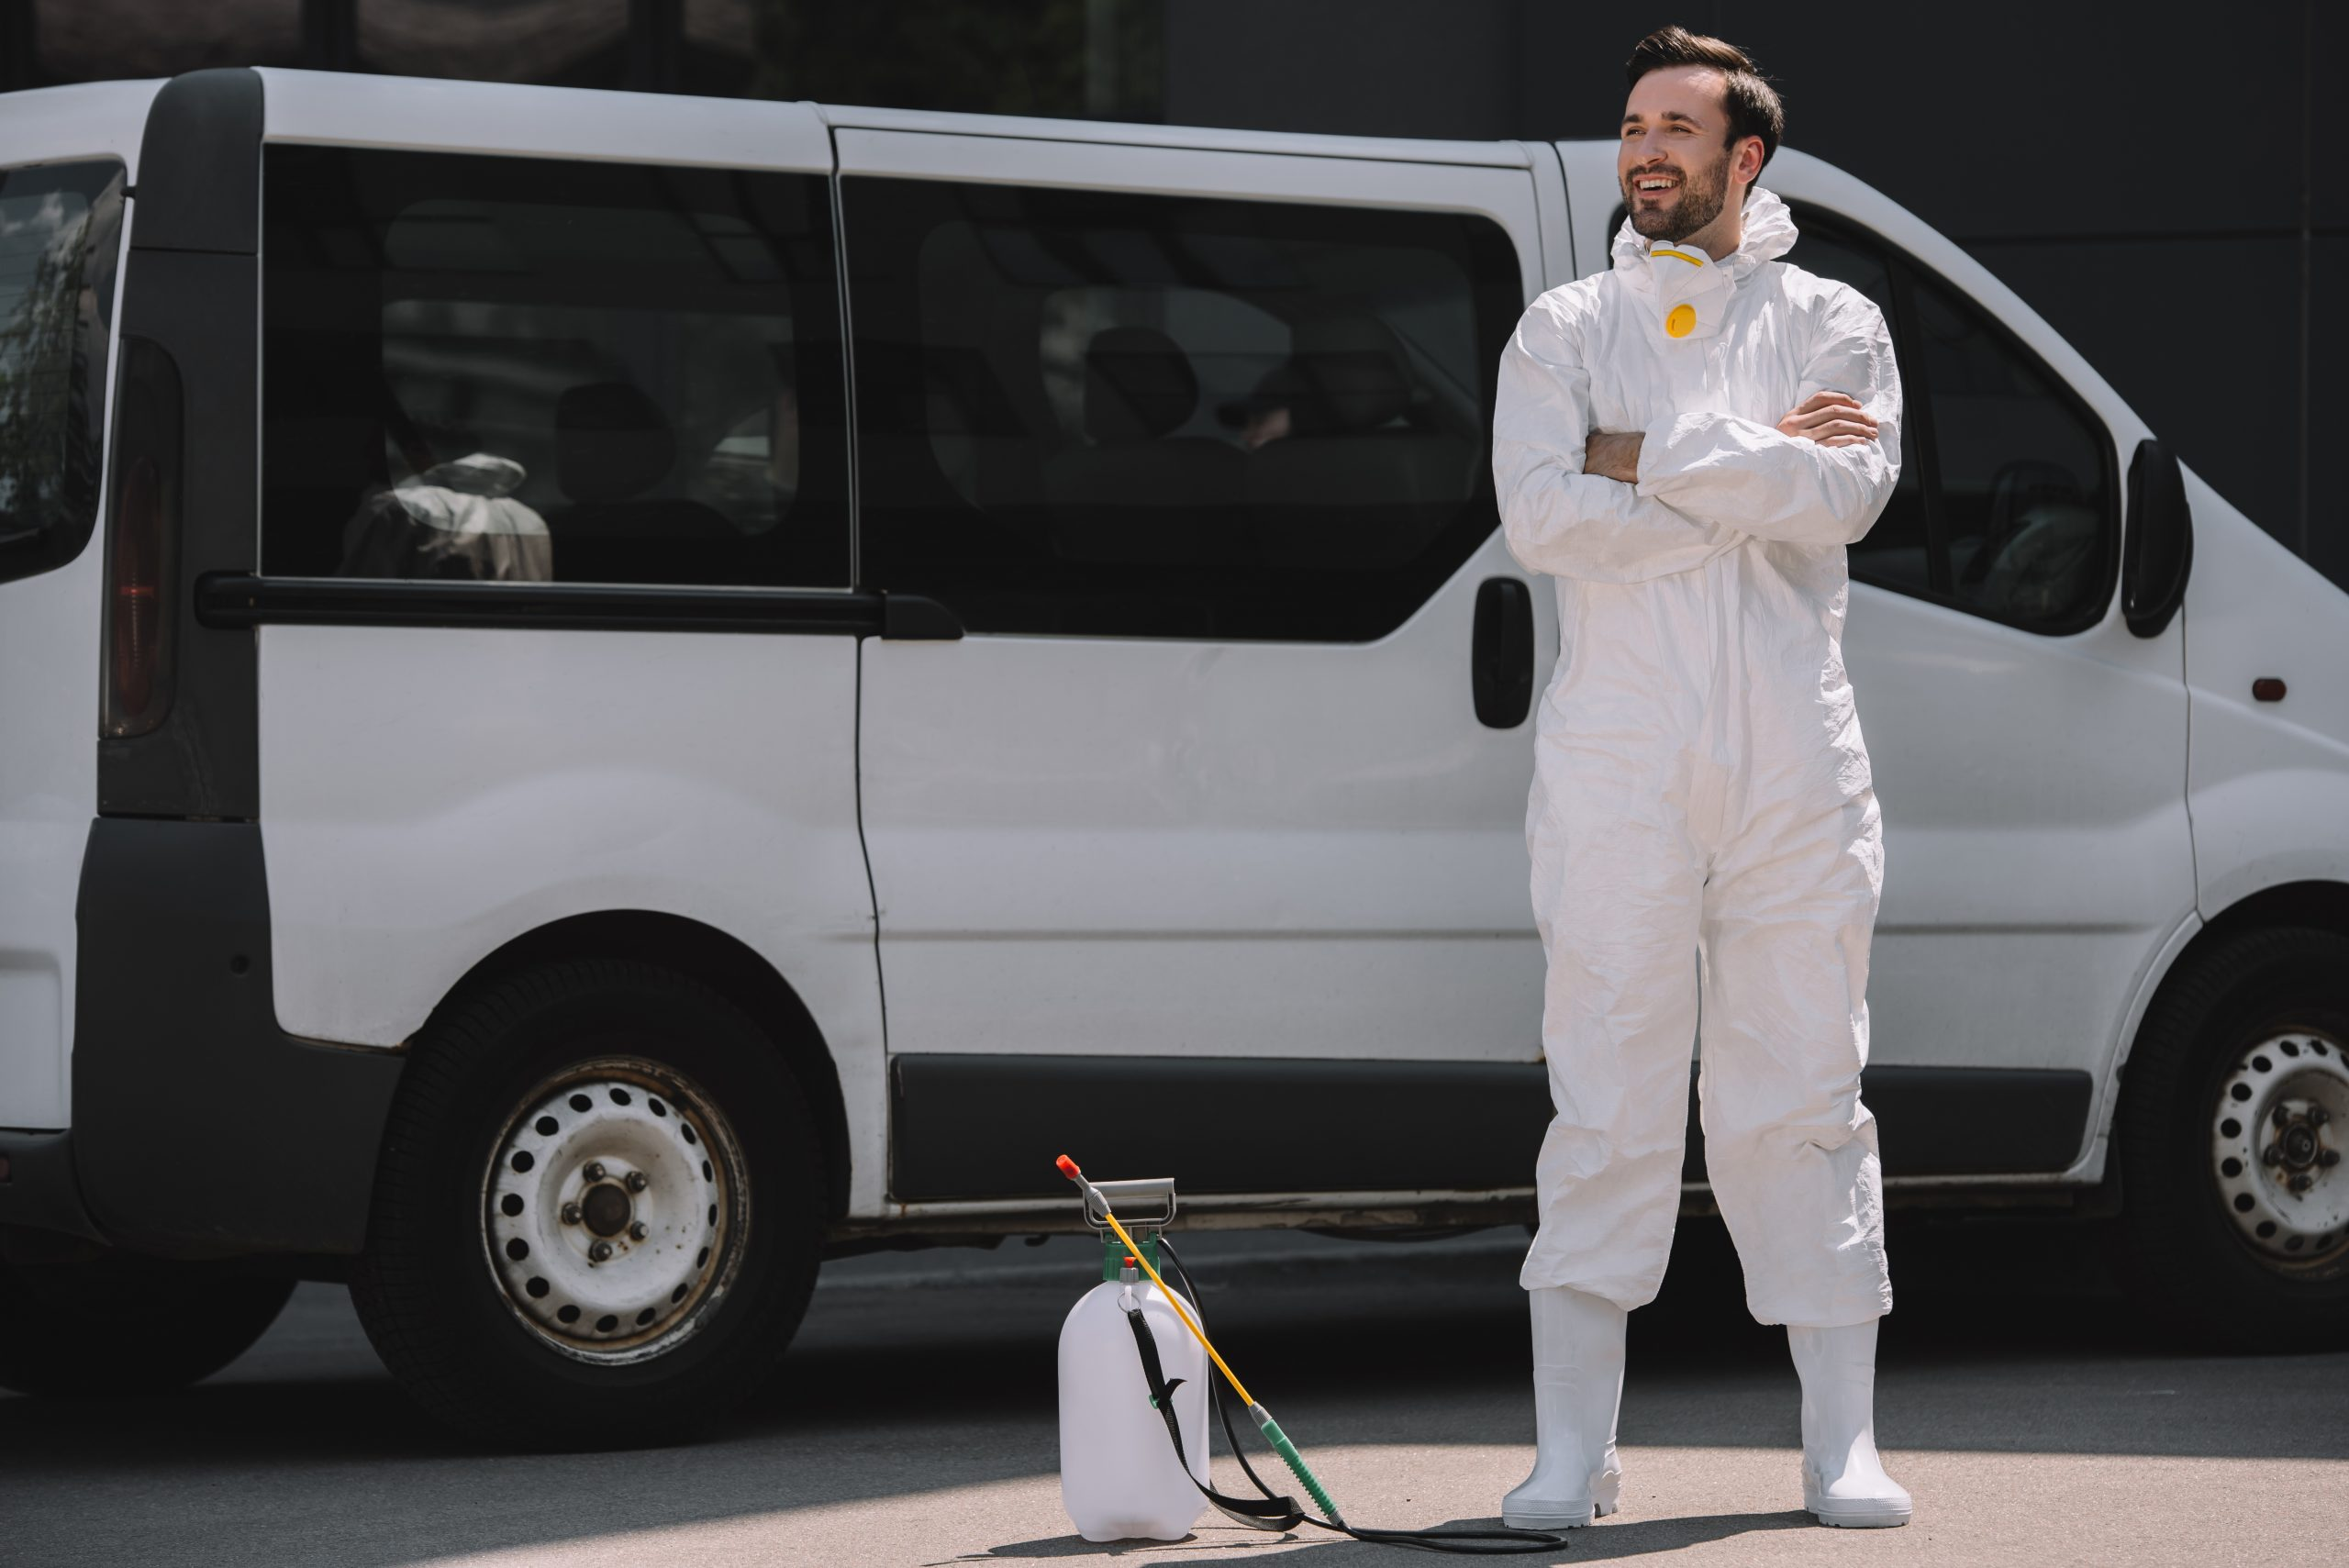 smiling pest control worker in uniform standing with crossed arms near car and sprayer on street